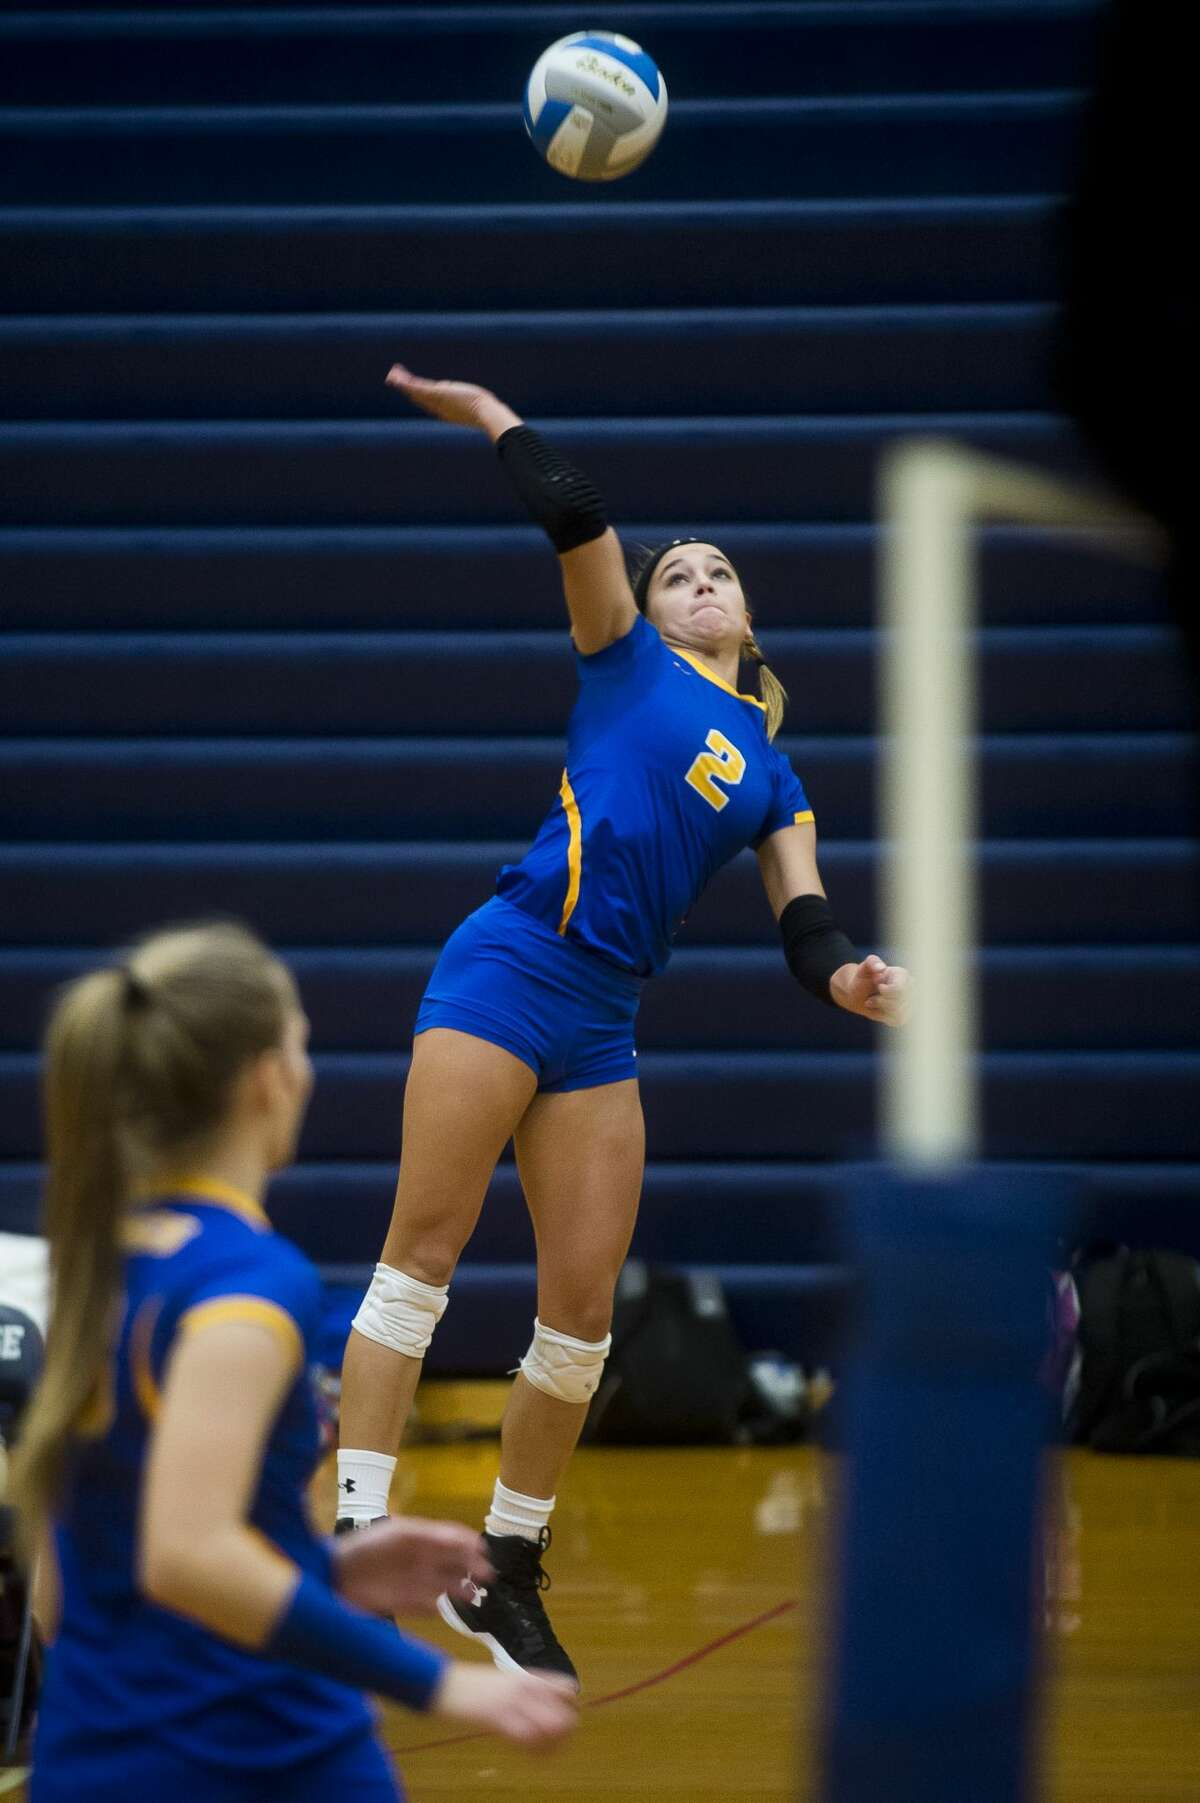 Midland senior Peyton Gerstacker spikes the ball during the Chemics' Class A state quarterfinal match against Bloomfield Hills Marian on Tuesday, Nov. 14, 2017 at Saginaw Heritage High School. The Chemics lost to the Mustangs 3-0. (Katy Kildee/kkildee@mdn.net)